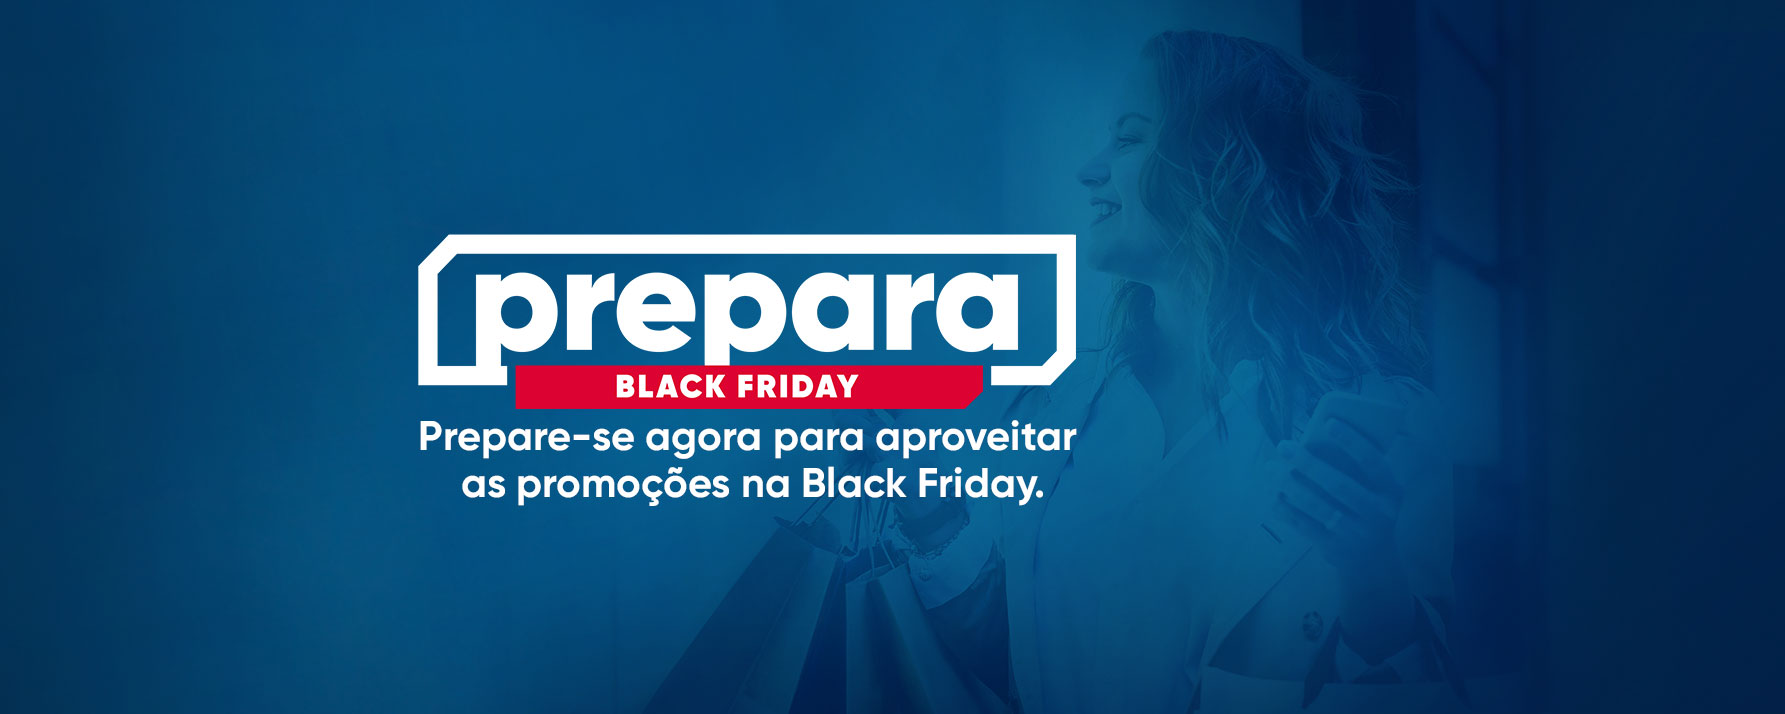 Prepara Black Friday